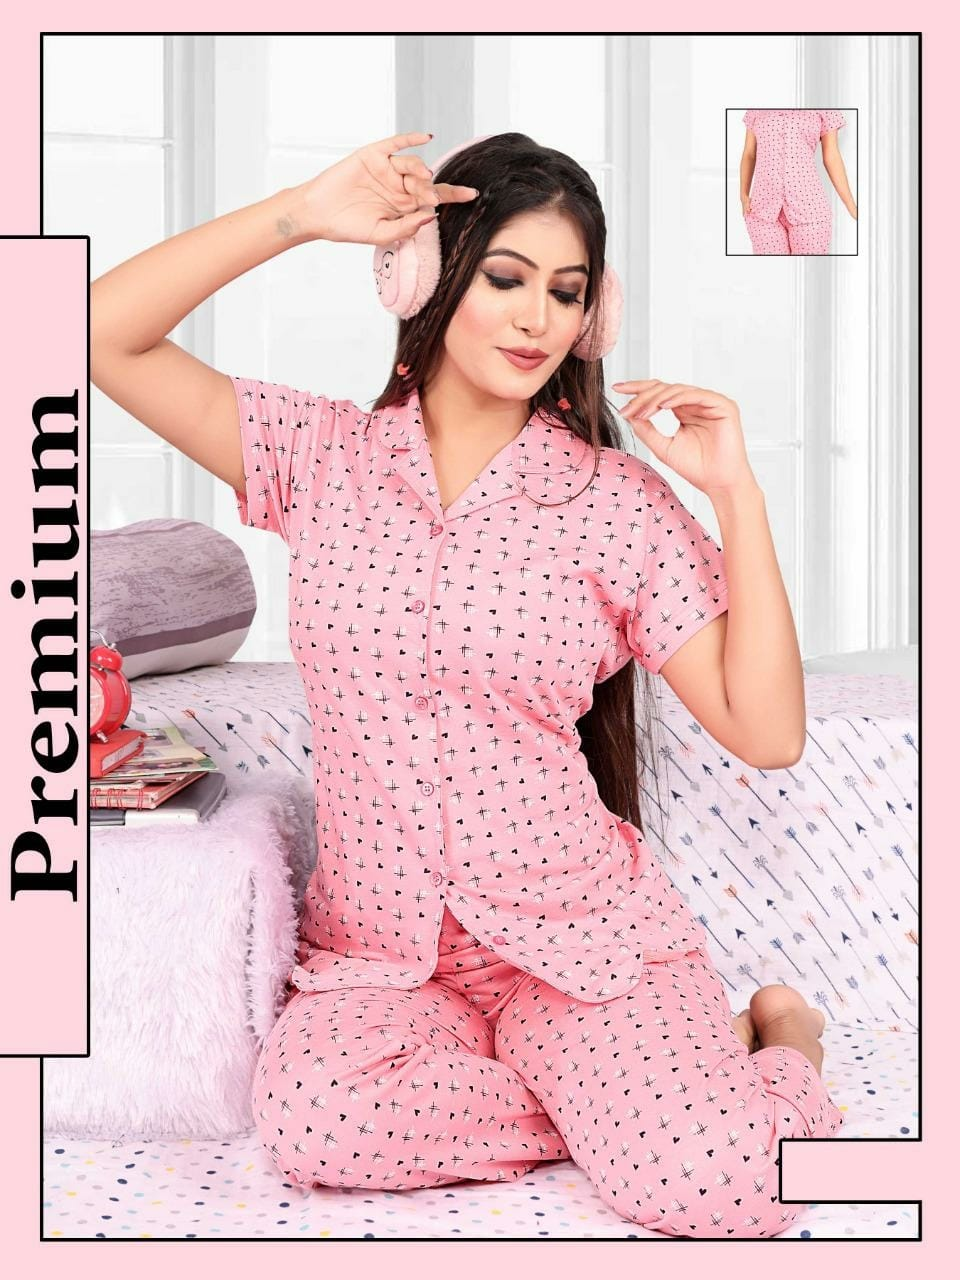 Impex | Women's relaxable all over printed night suits